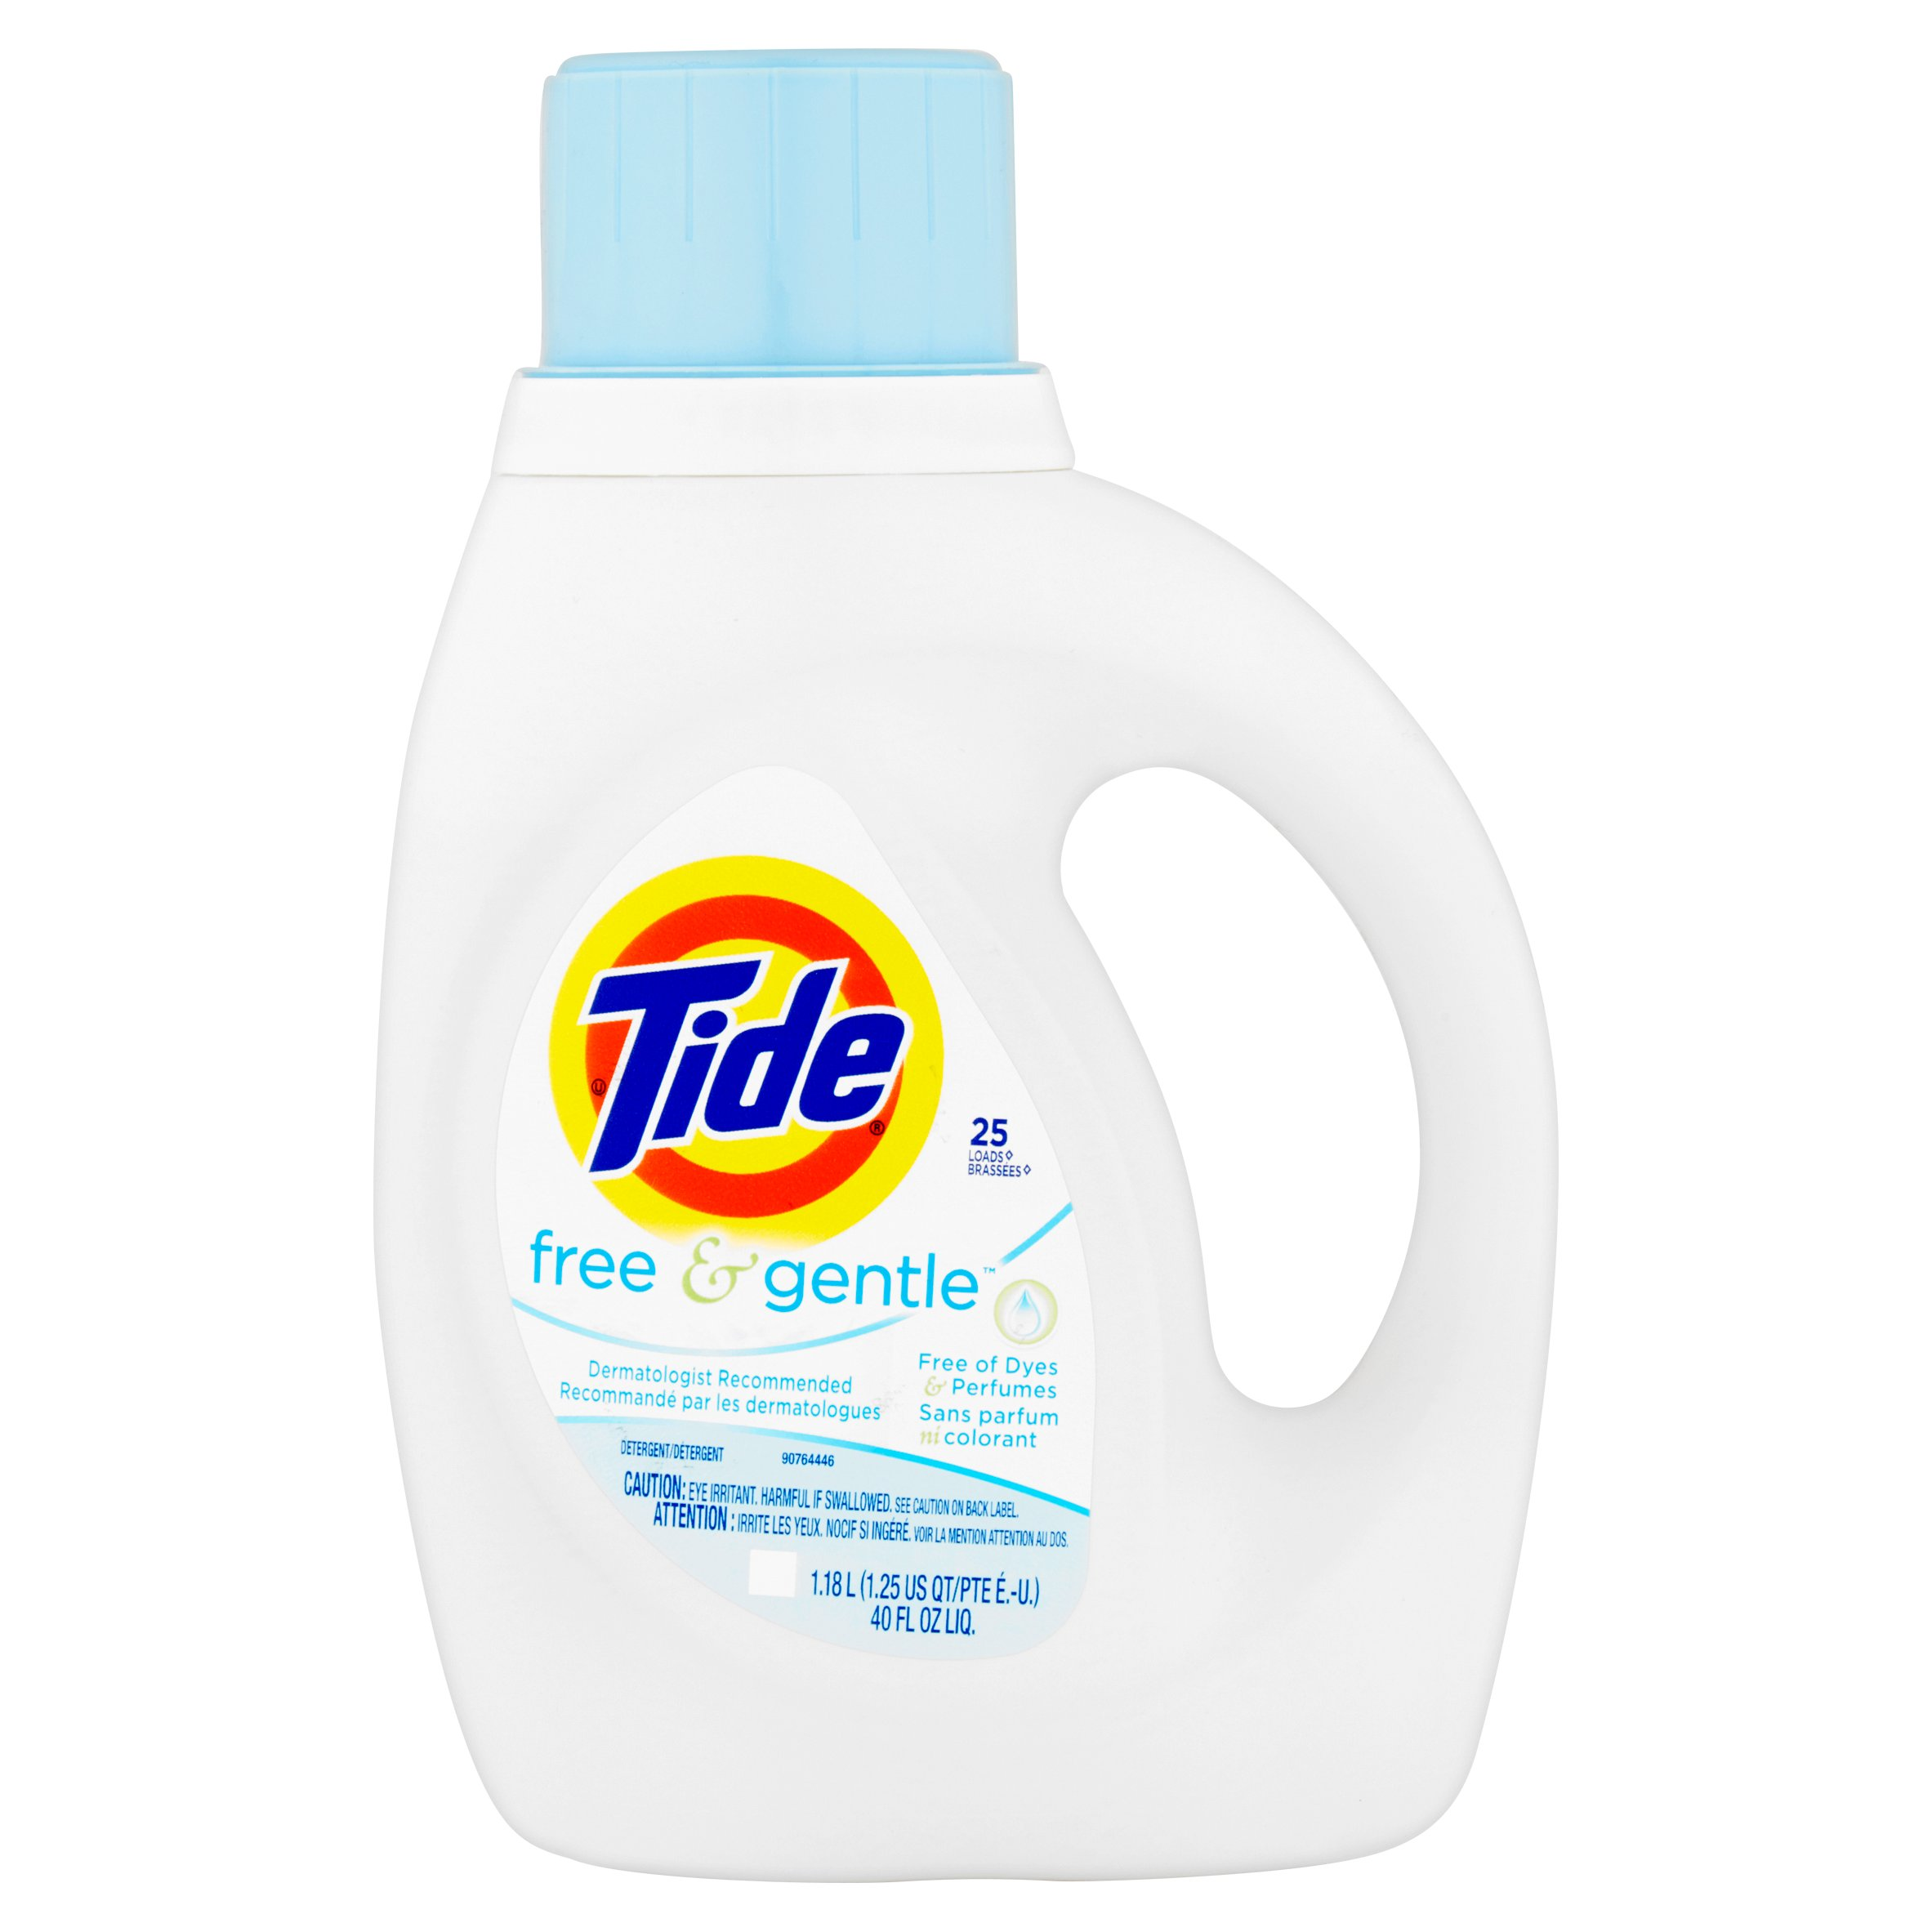 Tide Free and Gentle Liquid Laundry Detergent 25 Loads